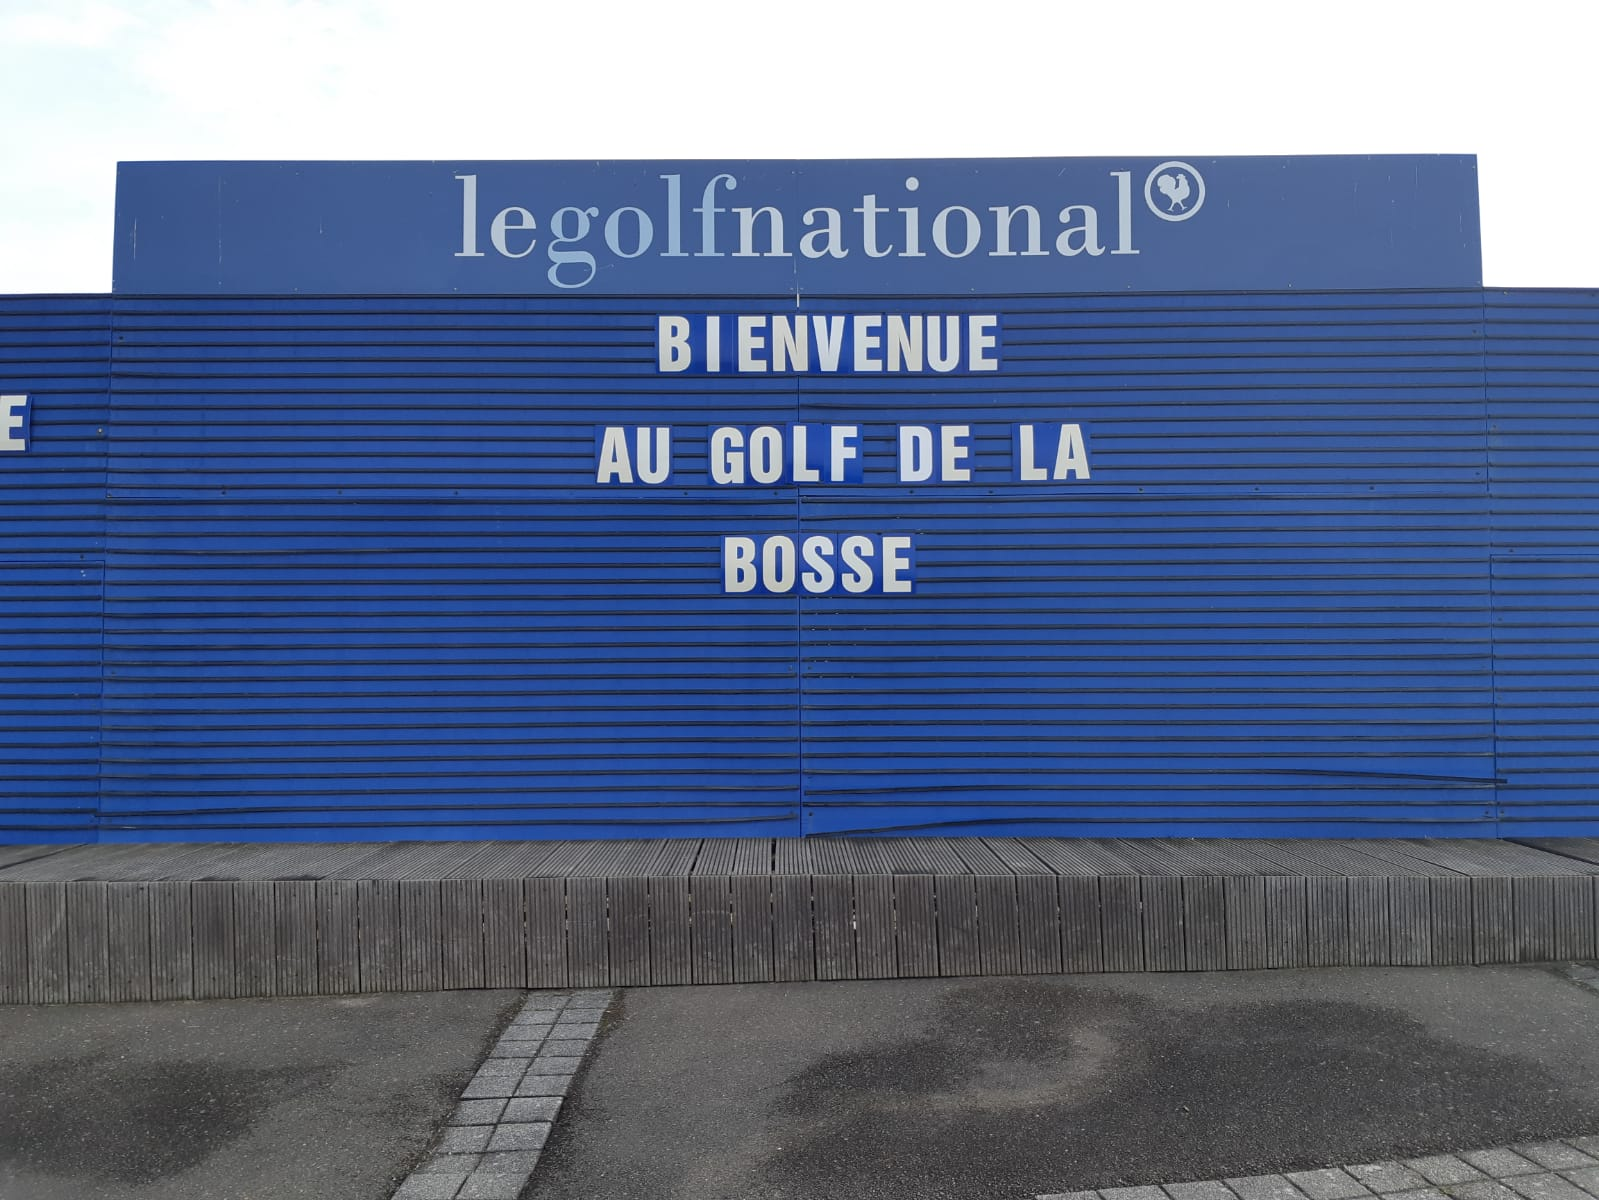 Accueil au golf national